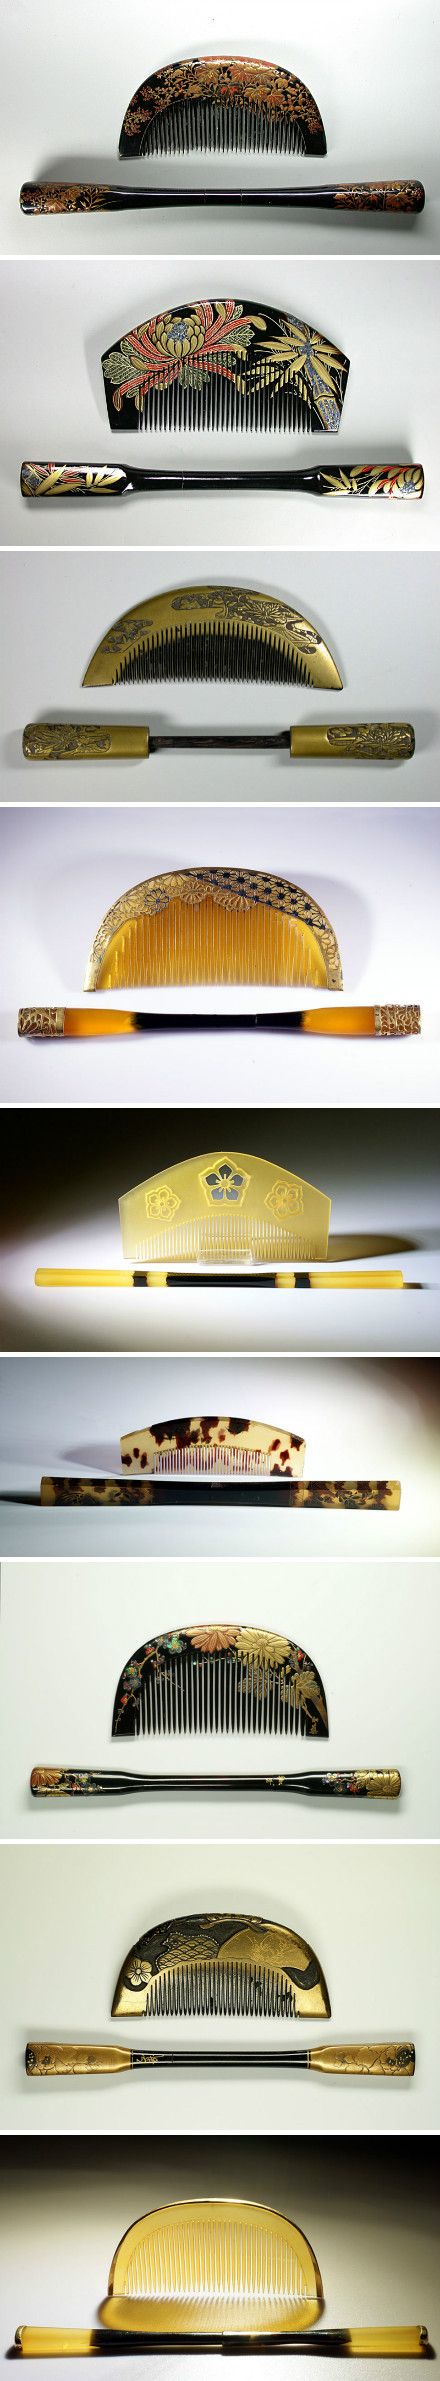 Kanzashi & Kushi Some 400 years ago, Japan took the simple comb and transformed it into an elegant beauty accessory that became a work of art. Japanese kushi (combs) and kanzashi (hairpins) became expressions of a woman's character, social class, religion, and people could even tell what neighbourhood someone lived in by looking at their hair ornaments .